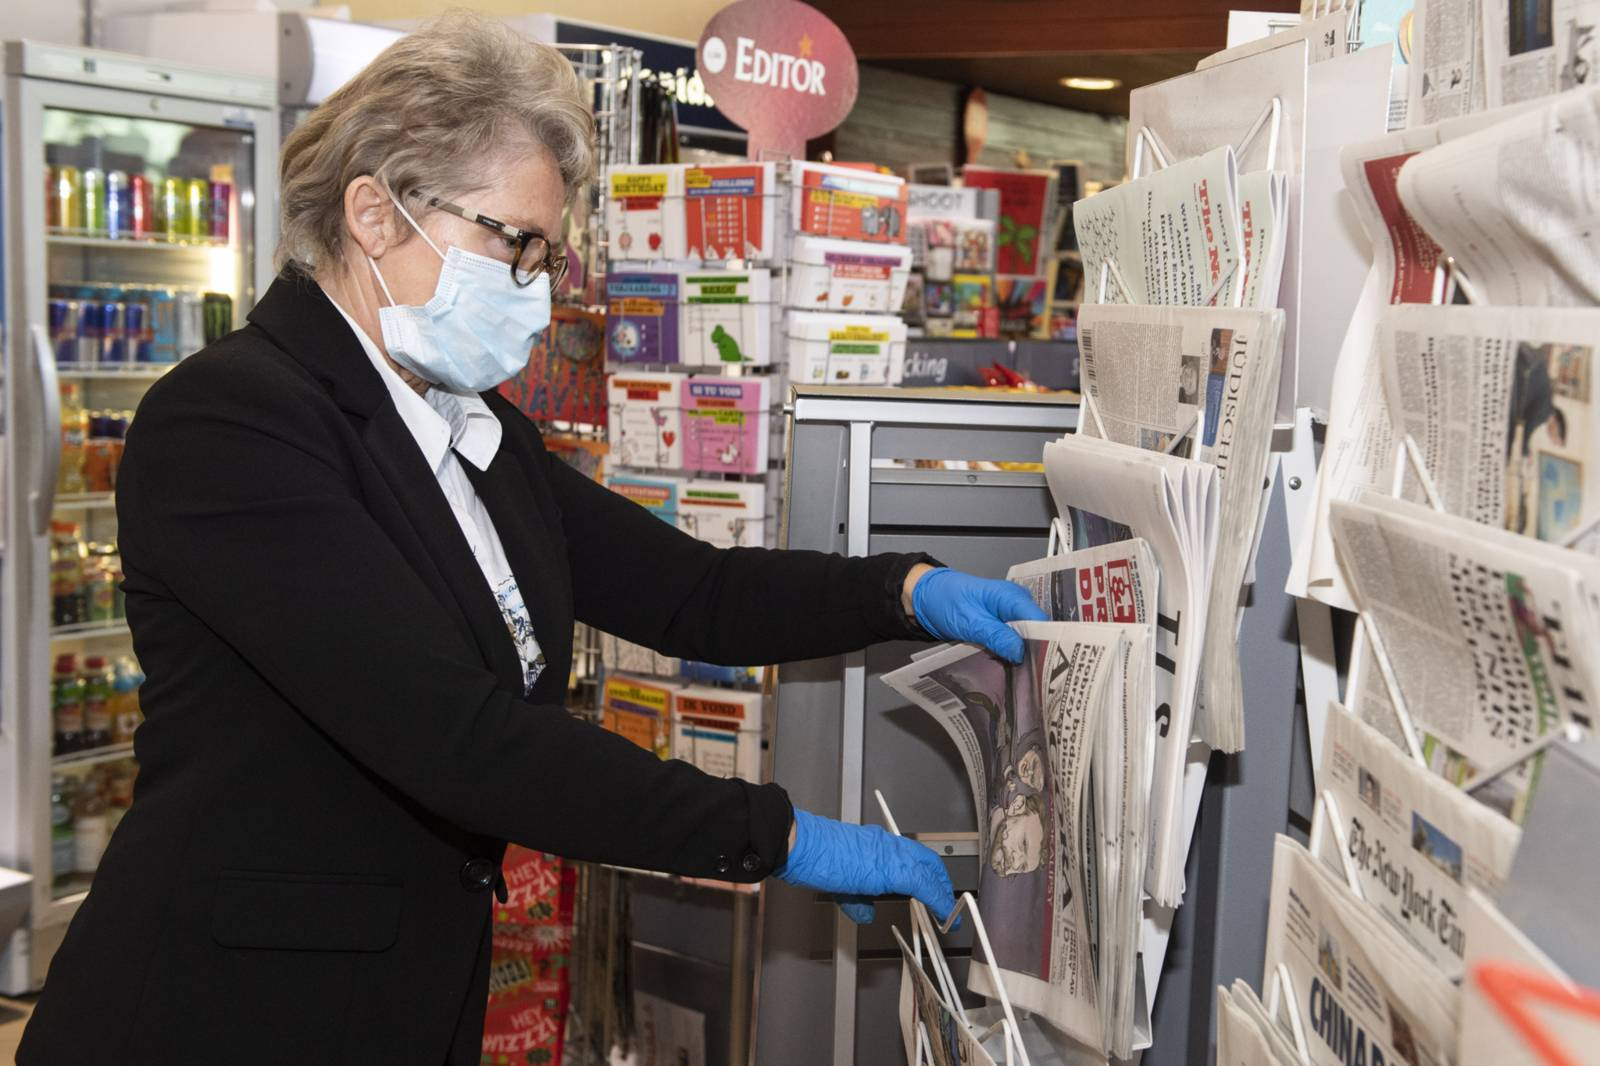 A newspaper seller wearing a protective mask and gloves during the coronavirus pandemic in Brussels